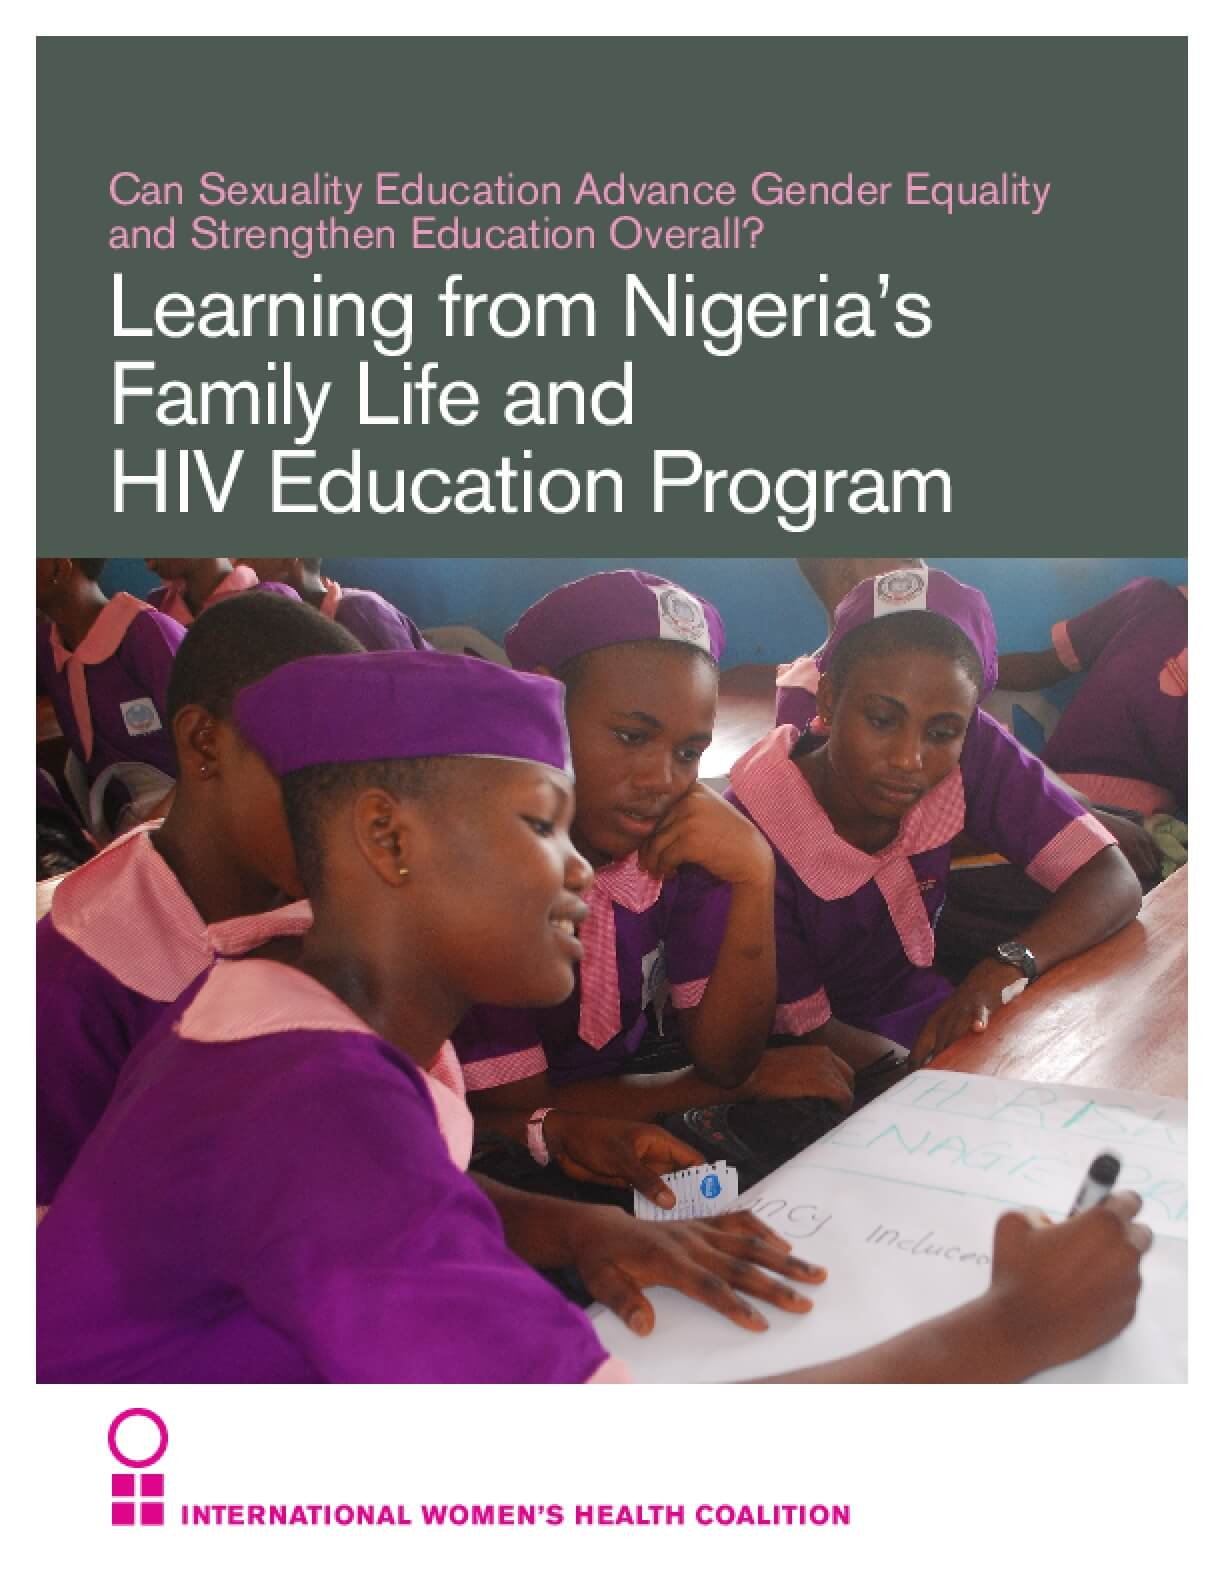 Can Sexuality Education Advance Gender Equality and Strengthen Education Overall? Learning from Nigeria's Family Life and HIV Education Program